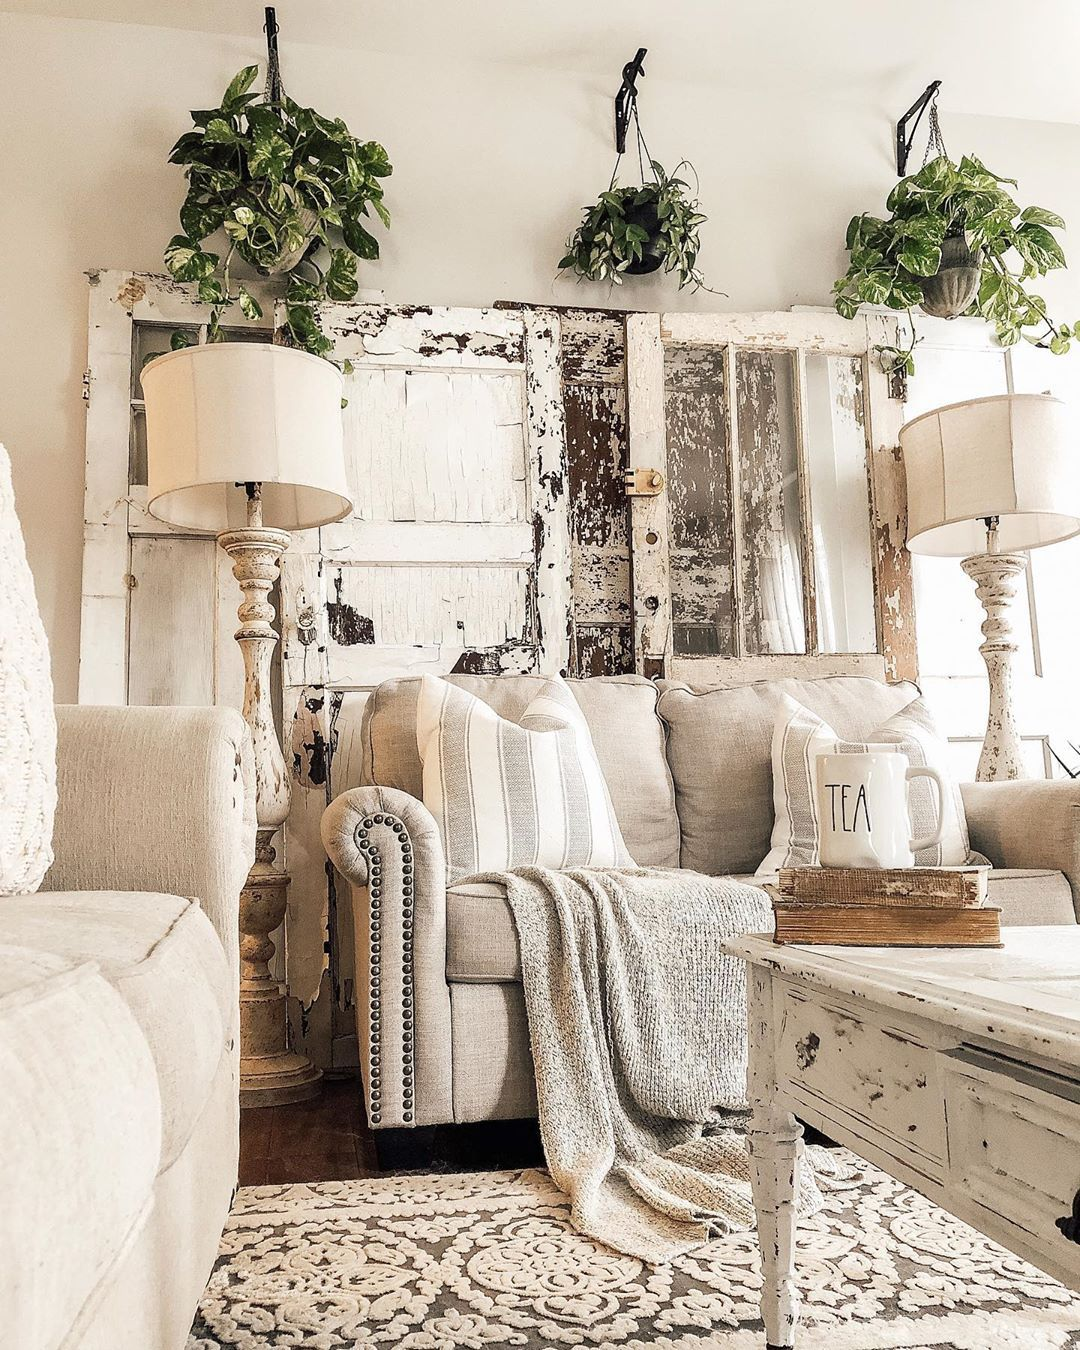 The Distressed Accents Paired With The Hanging Greenery Give This Space A Cozy Farmhouse Vibe That We Are Lo Farm House Living Room Home Living Room Home Decor #shabby #chic #decorating #ideas #living #room